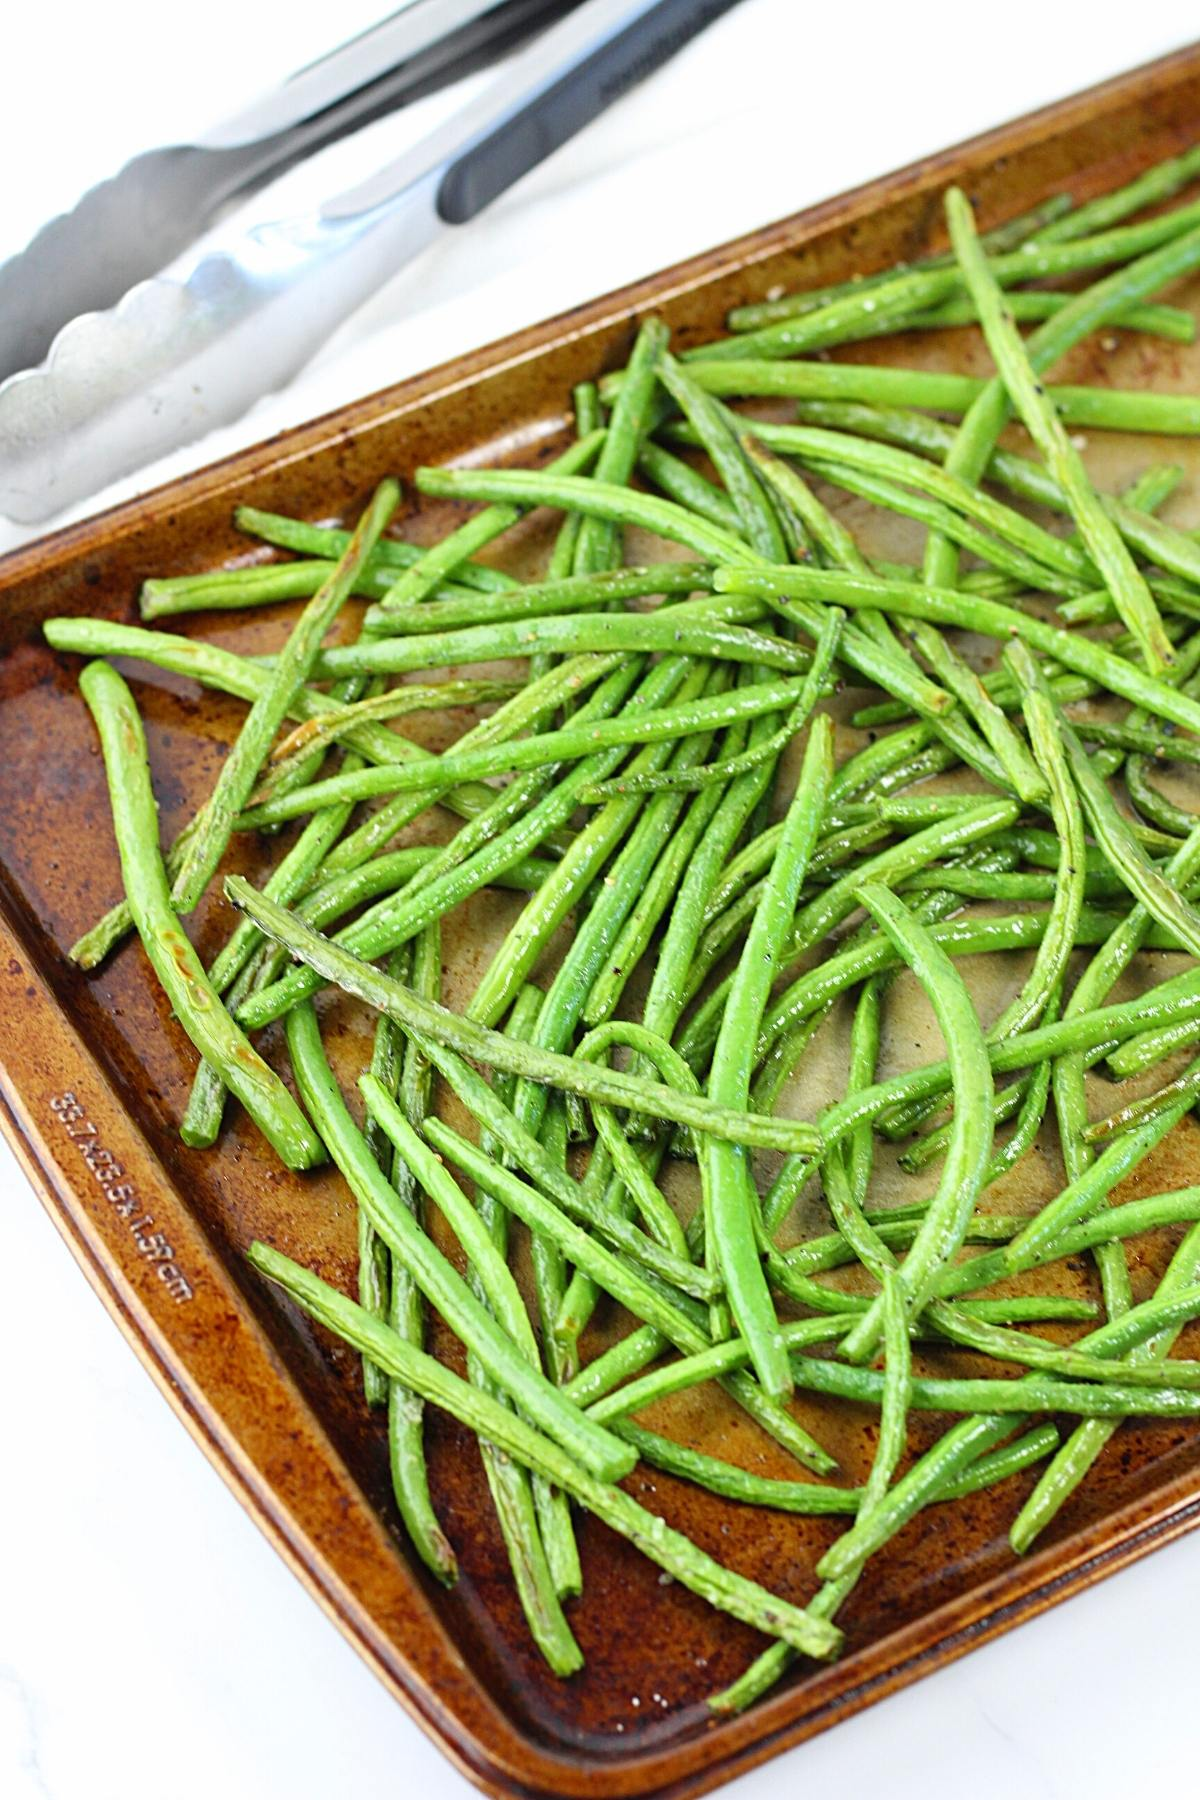 oven-roasted green beans on a baking sheet with tongs on the side